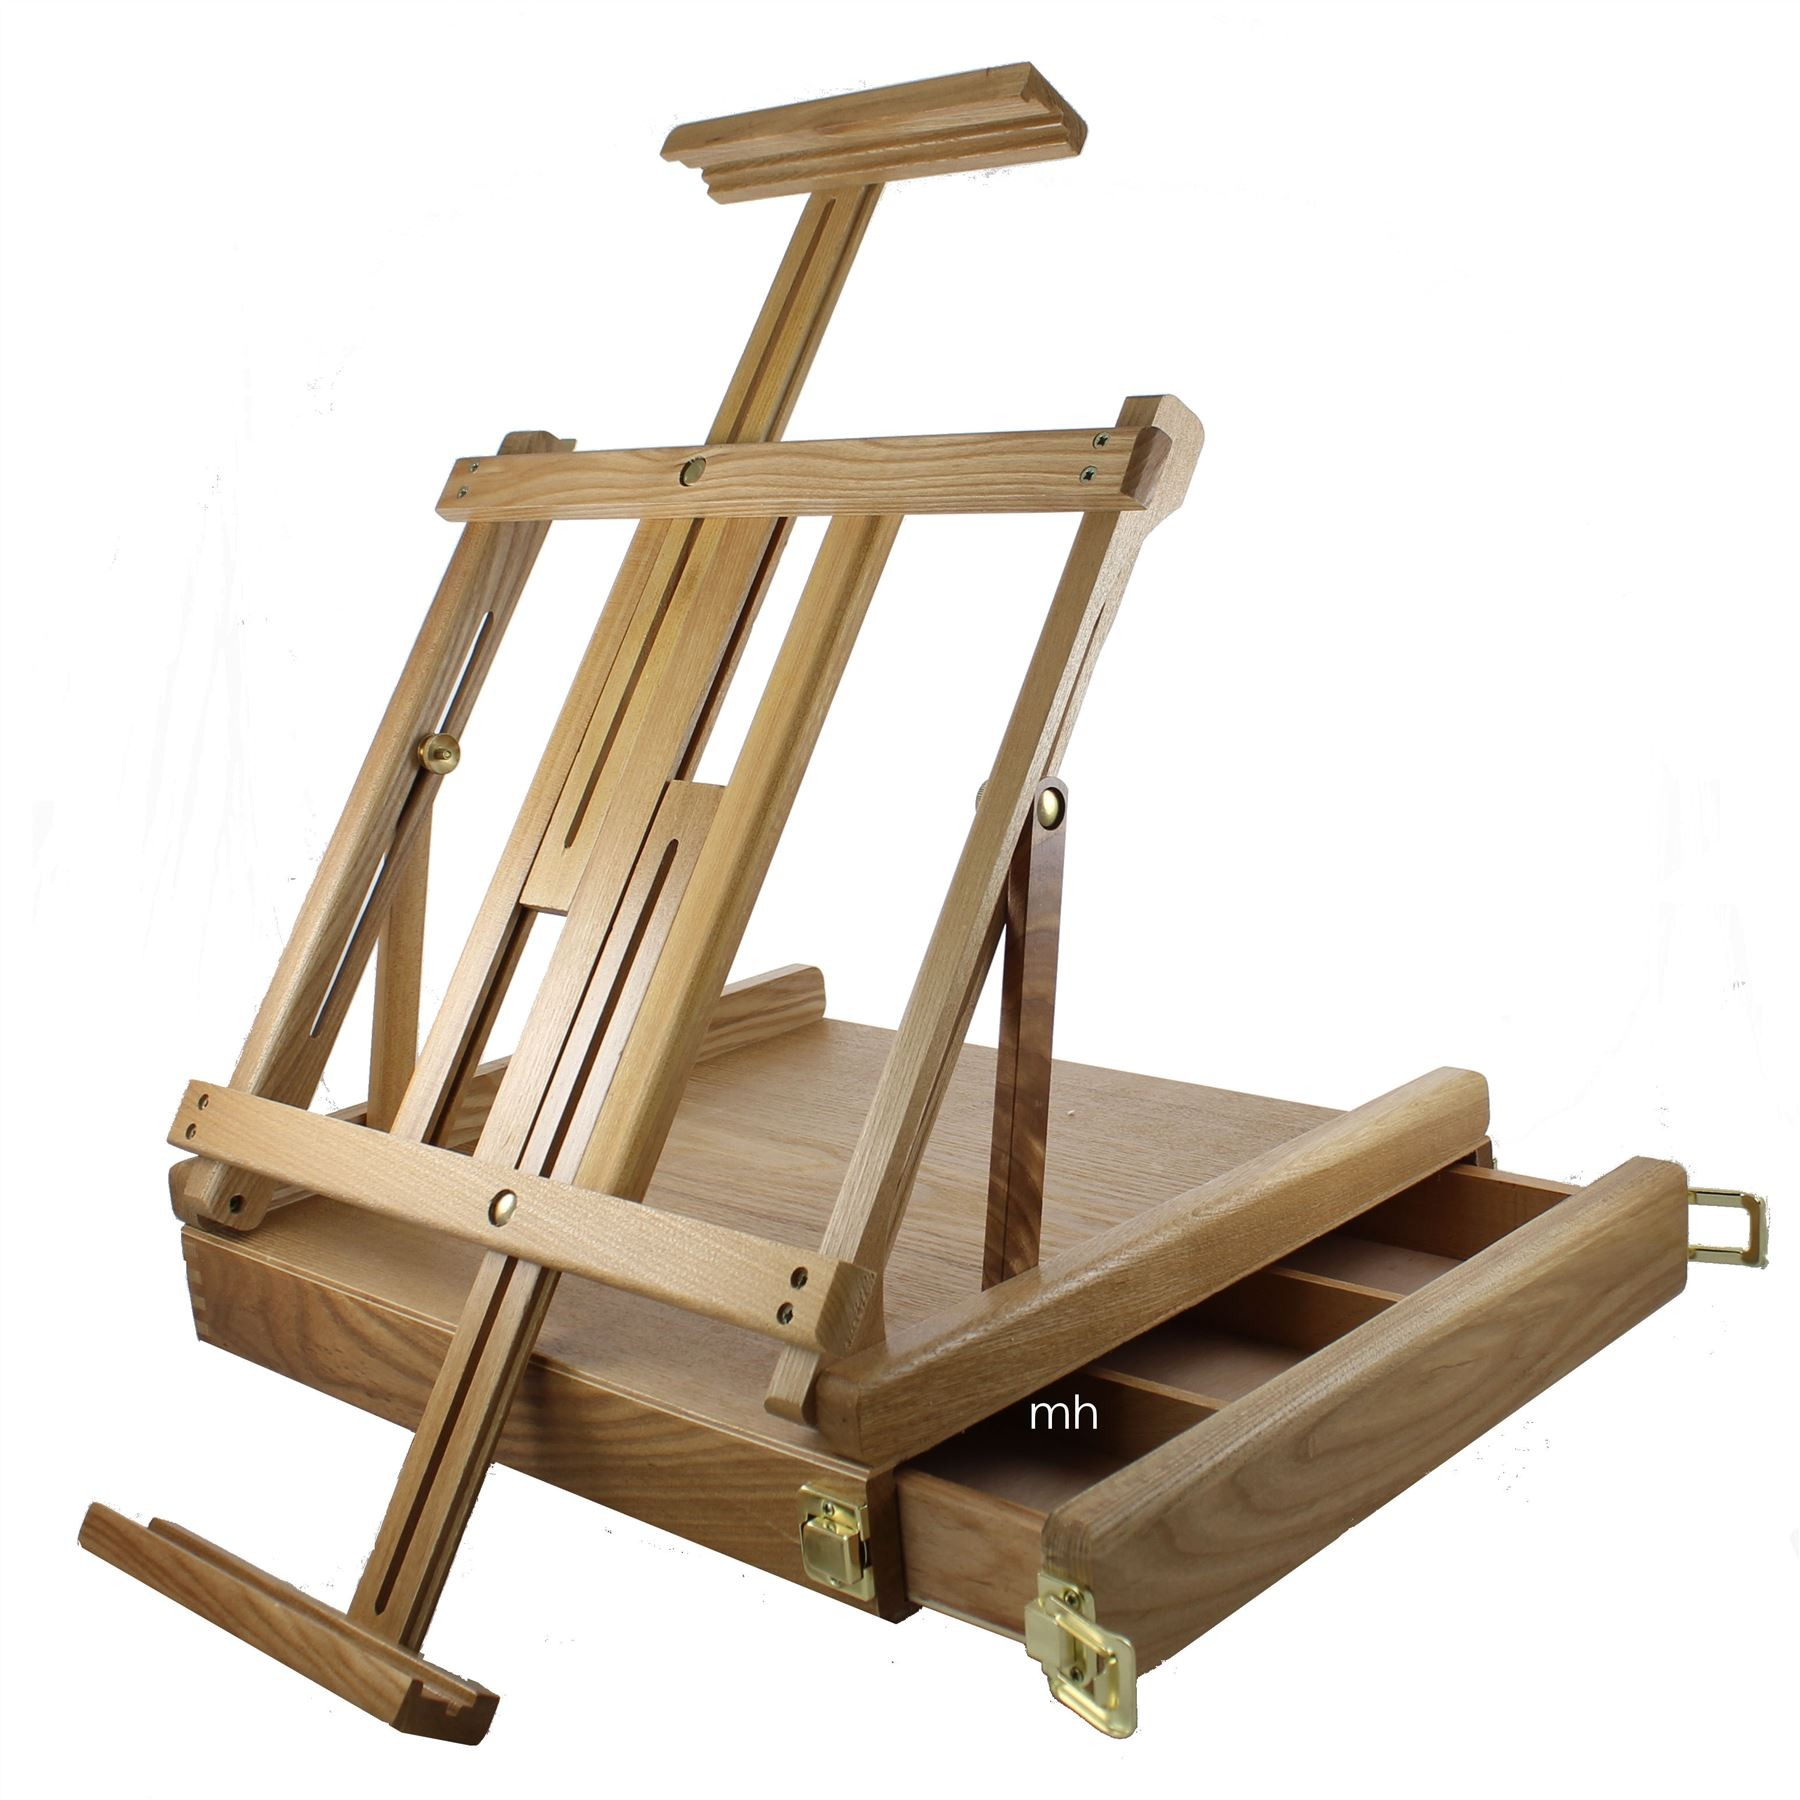 Loxley el-900 wentworth table easel